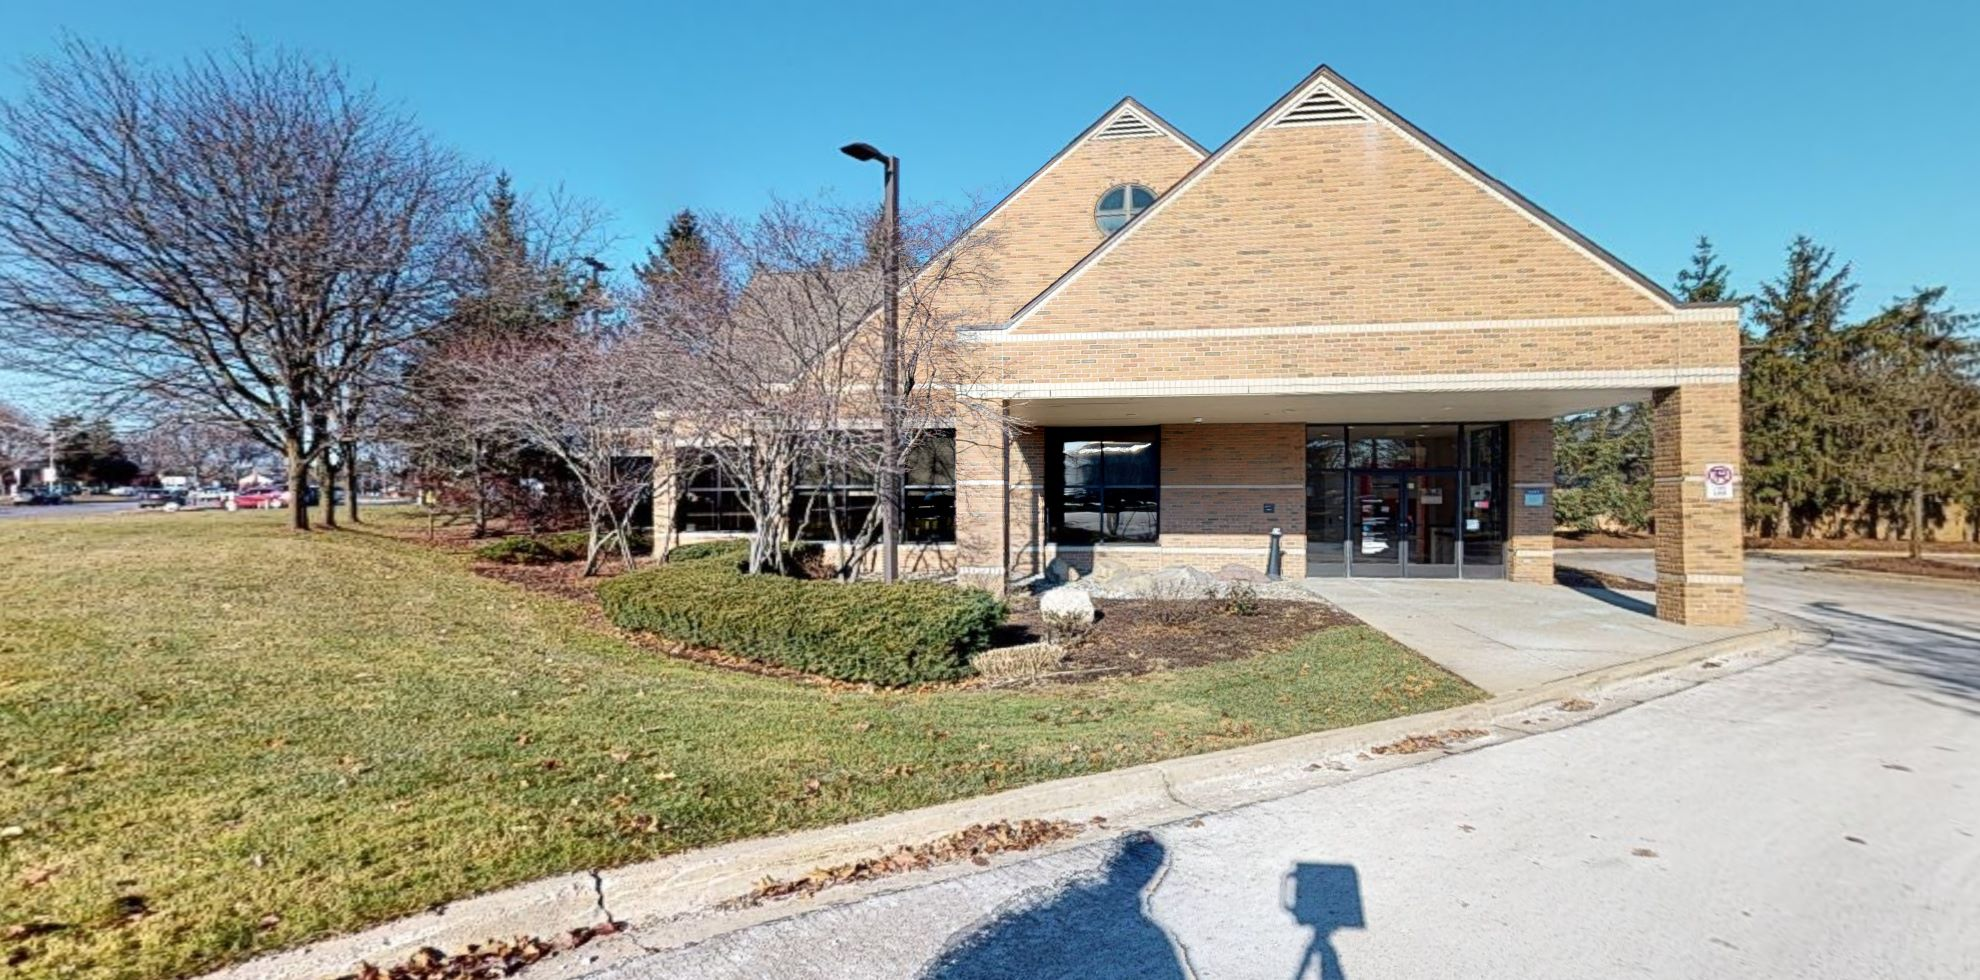 Bank of America financial center with walk-up ATM   36050 Woodward Ave, Bloomfield Hills, MI 48304